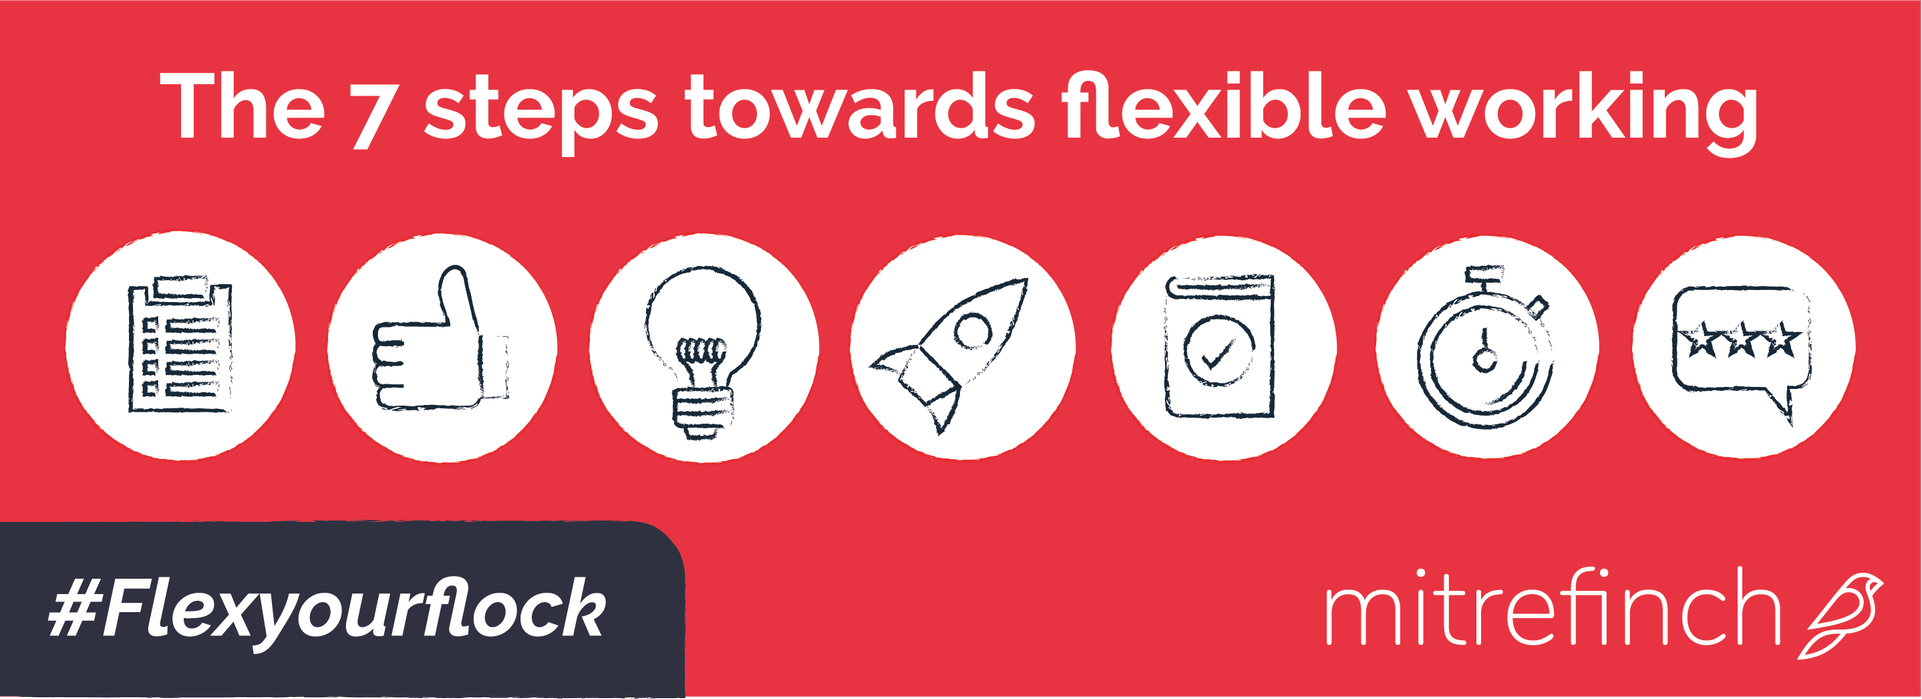 blog-flexible-working